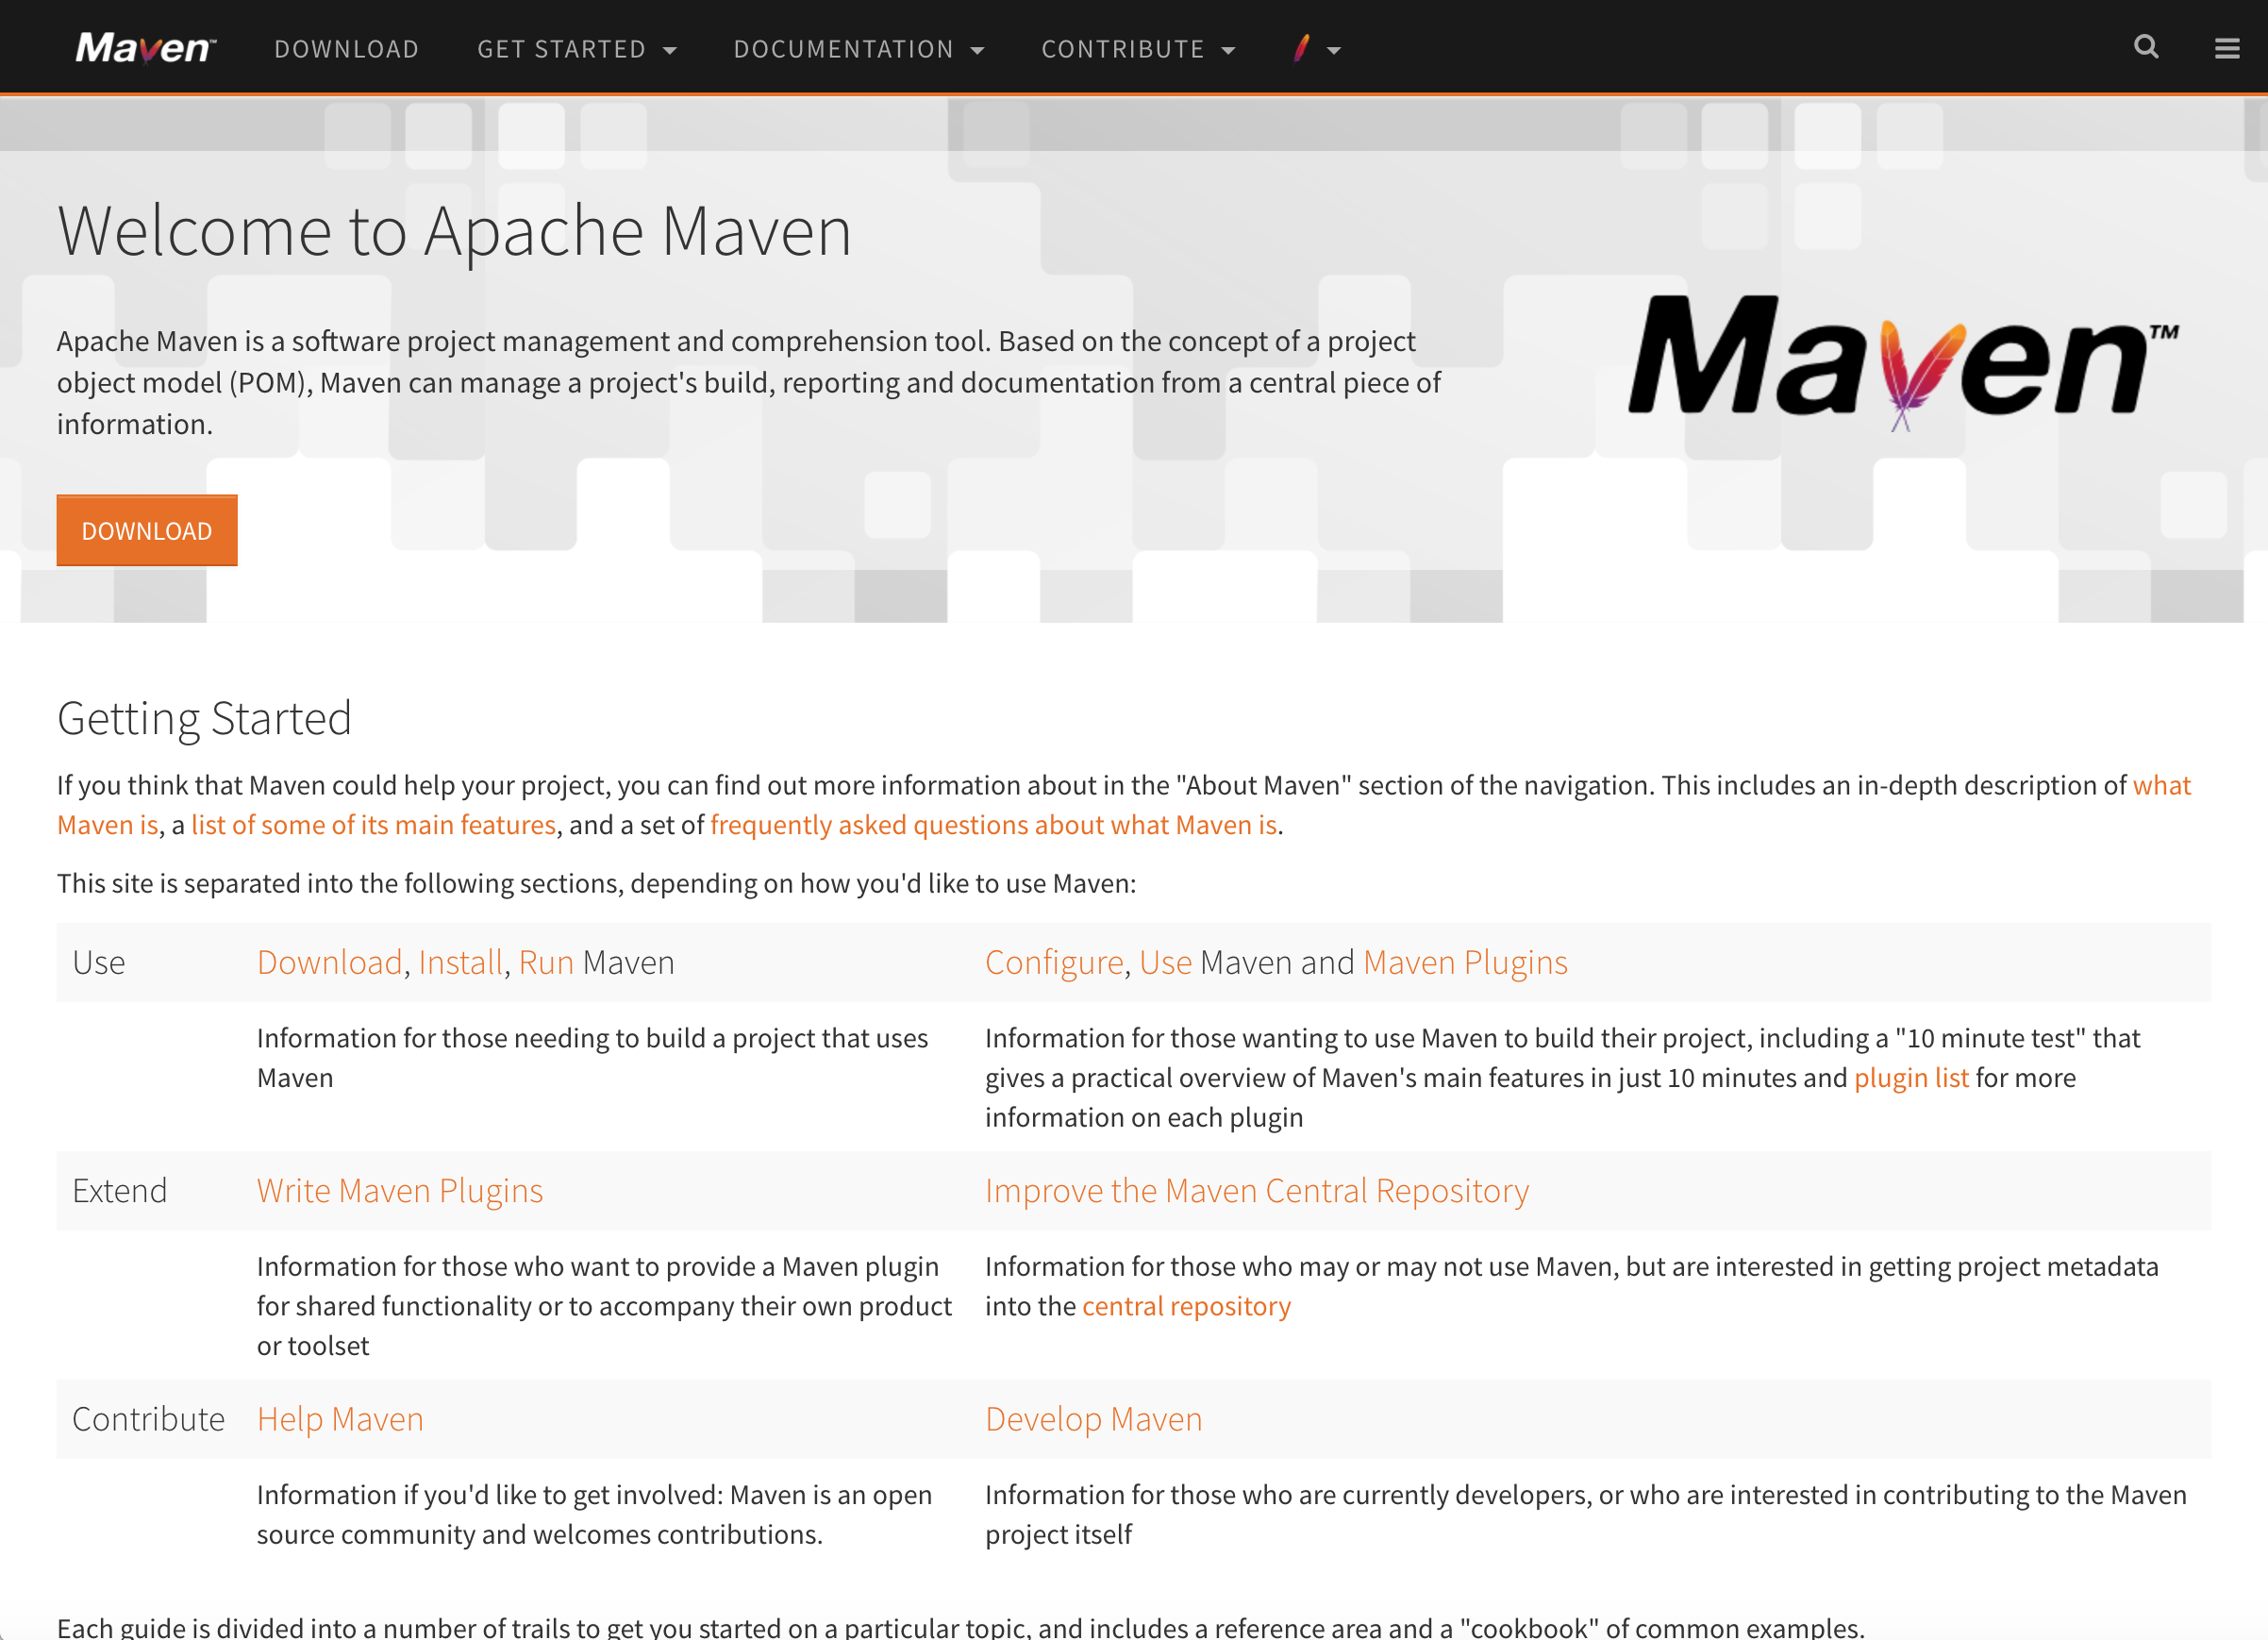 maven_homepage_partial.png